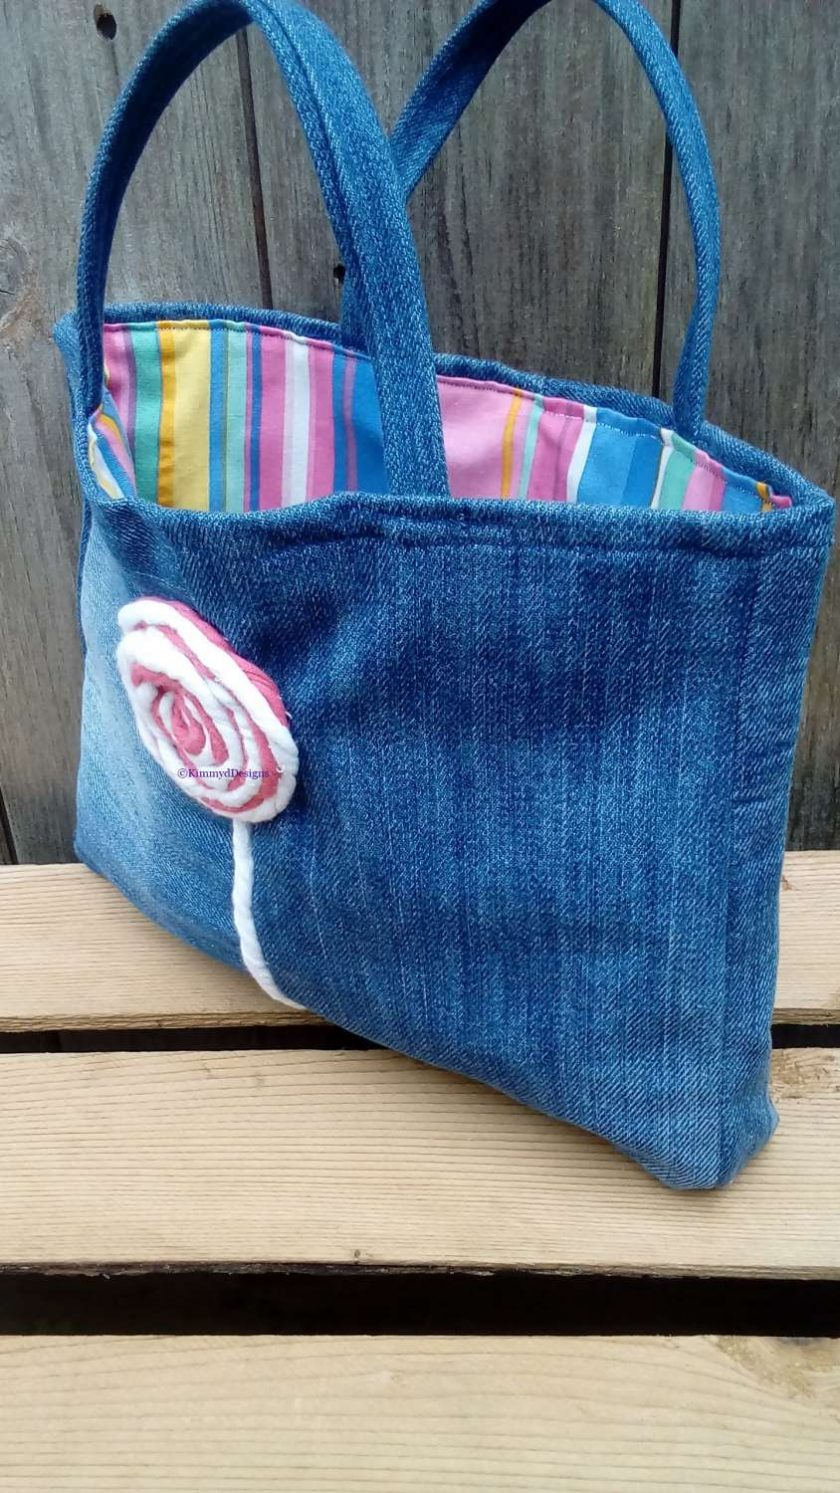 Kids Handbag (from recycled jeans) Lollipop Fully Lined Bag Gift Tote FREE UK POSTAGE 3